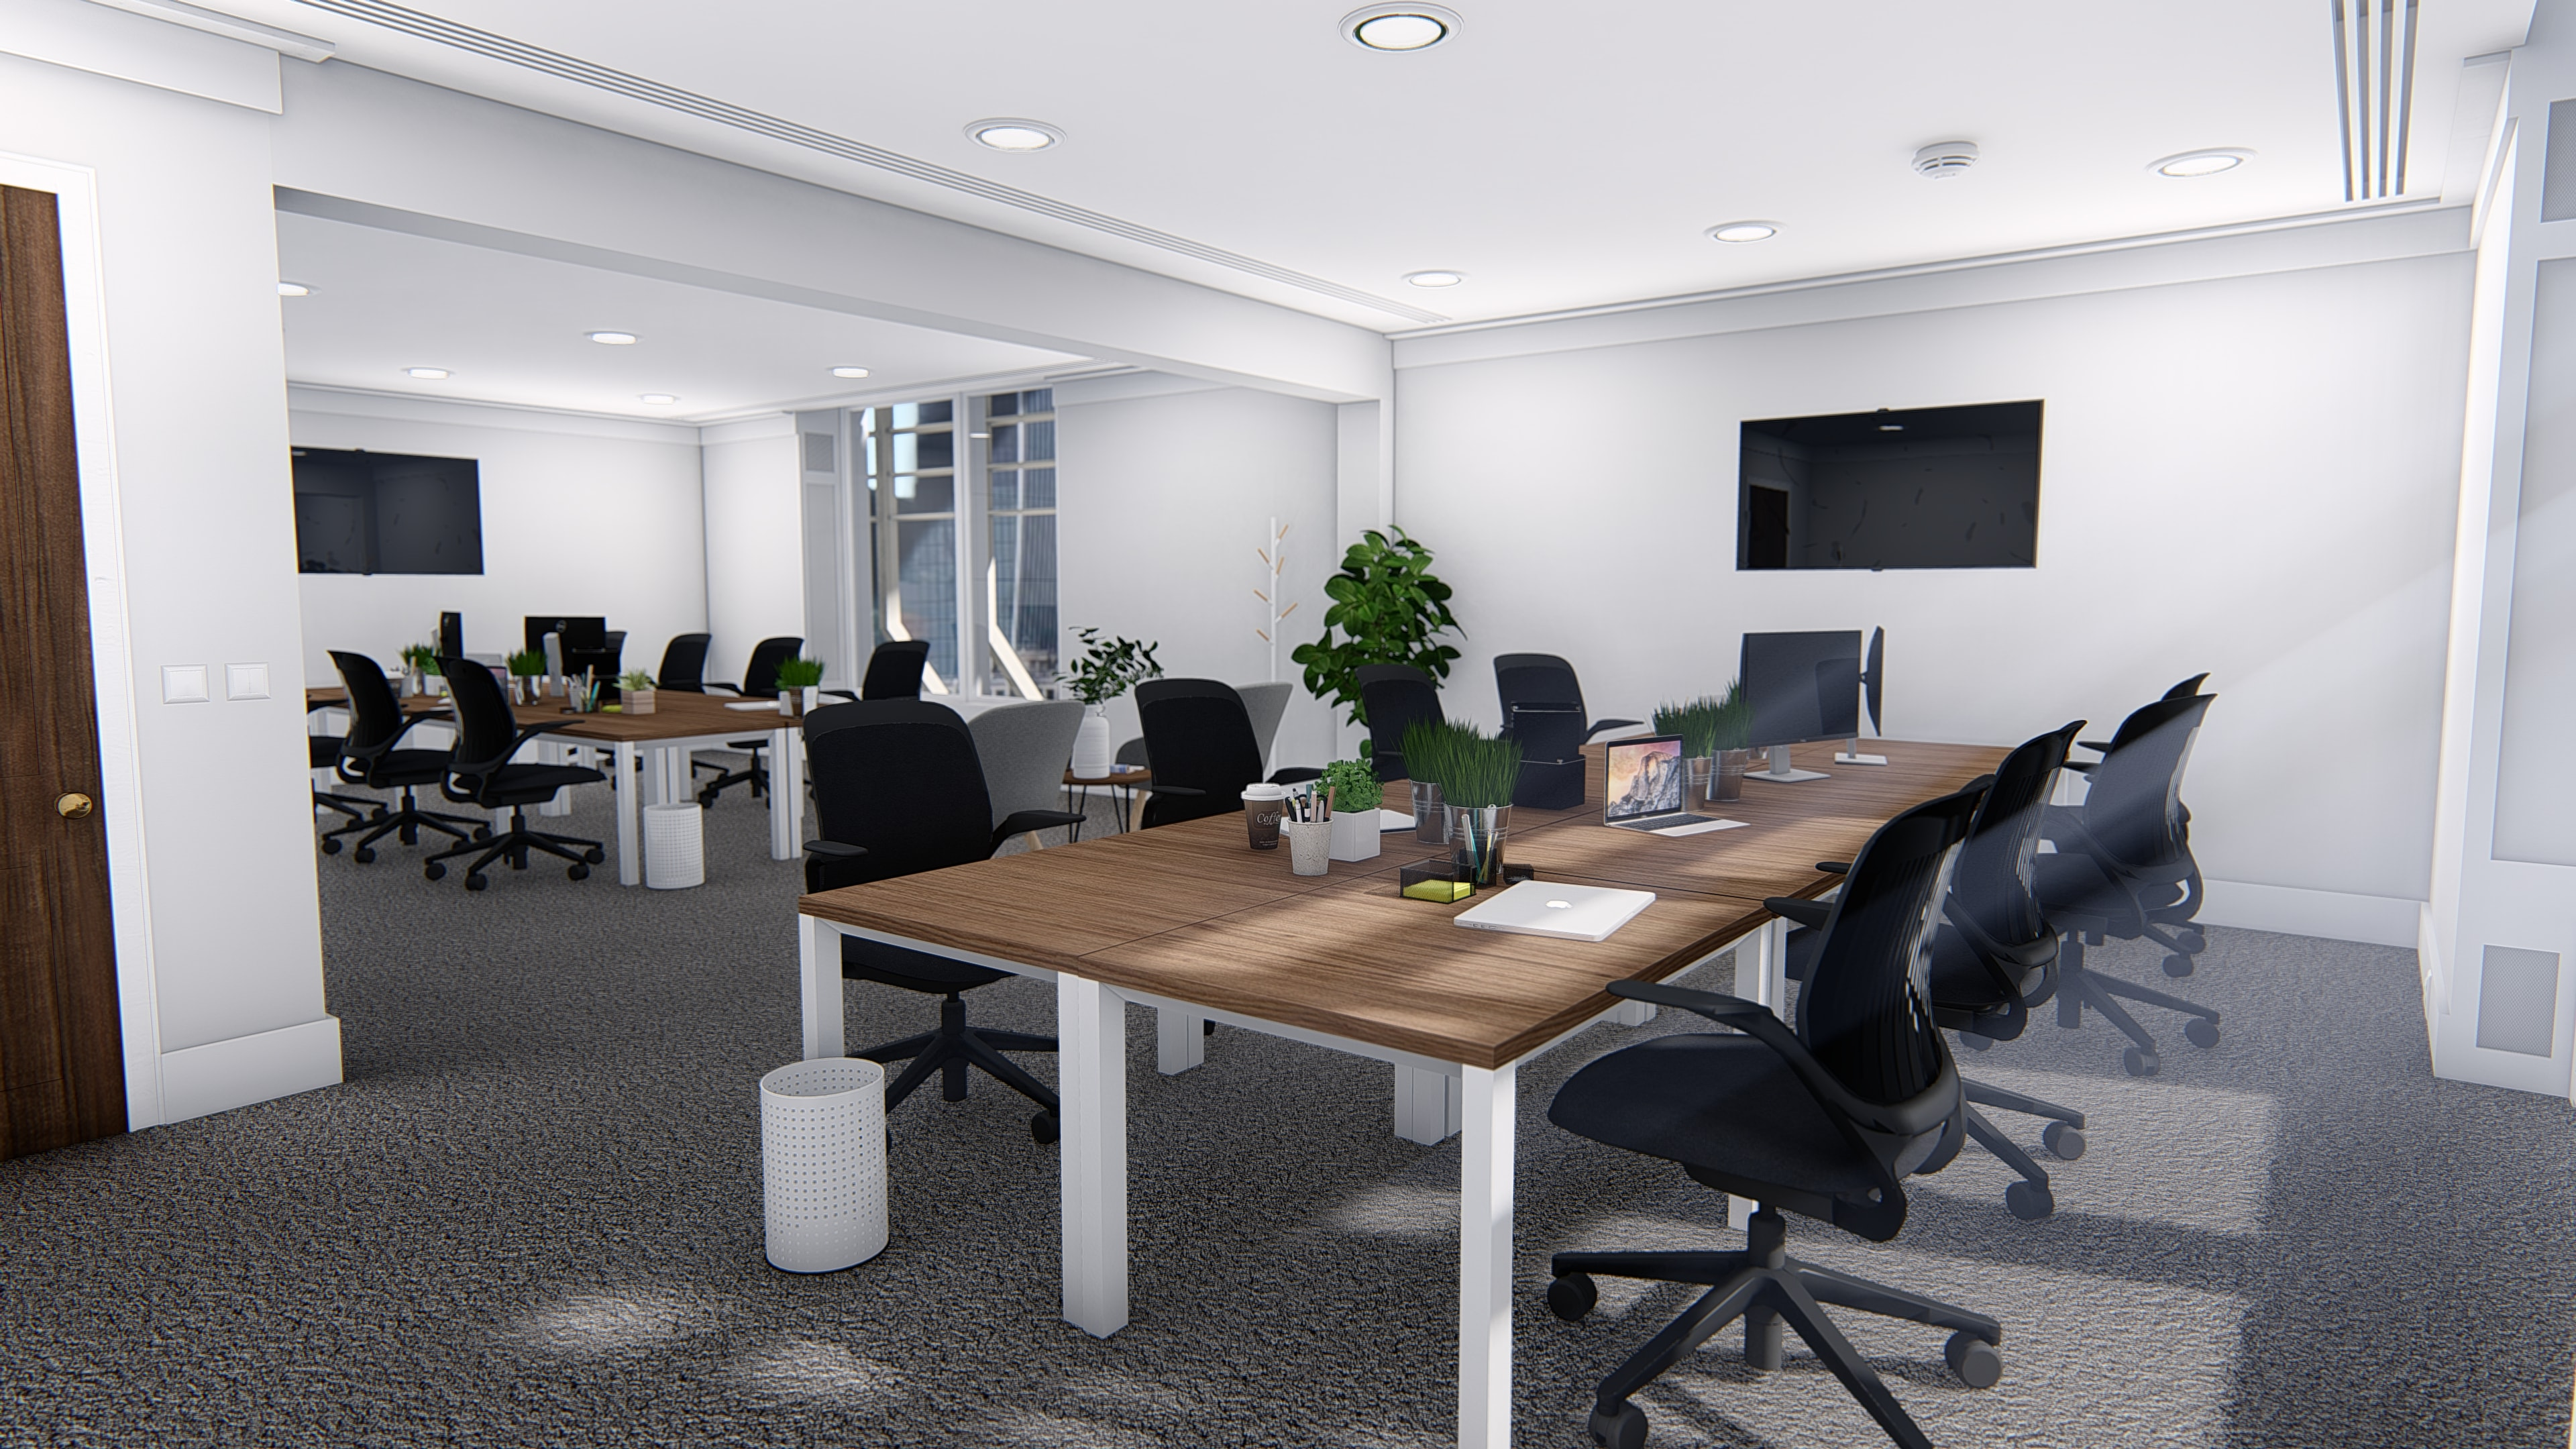 Example of potential office fit out